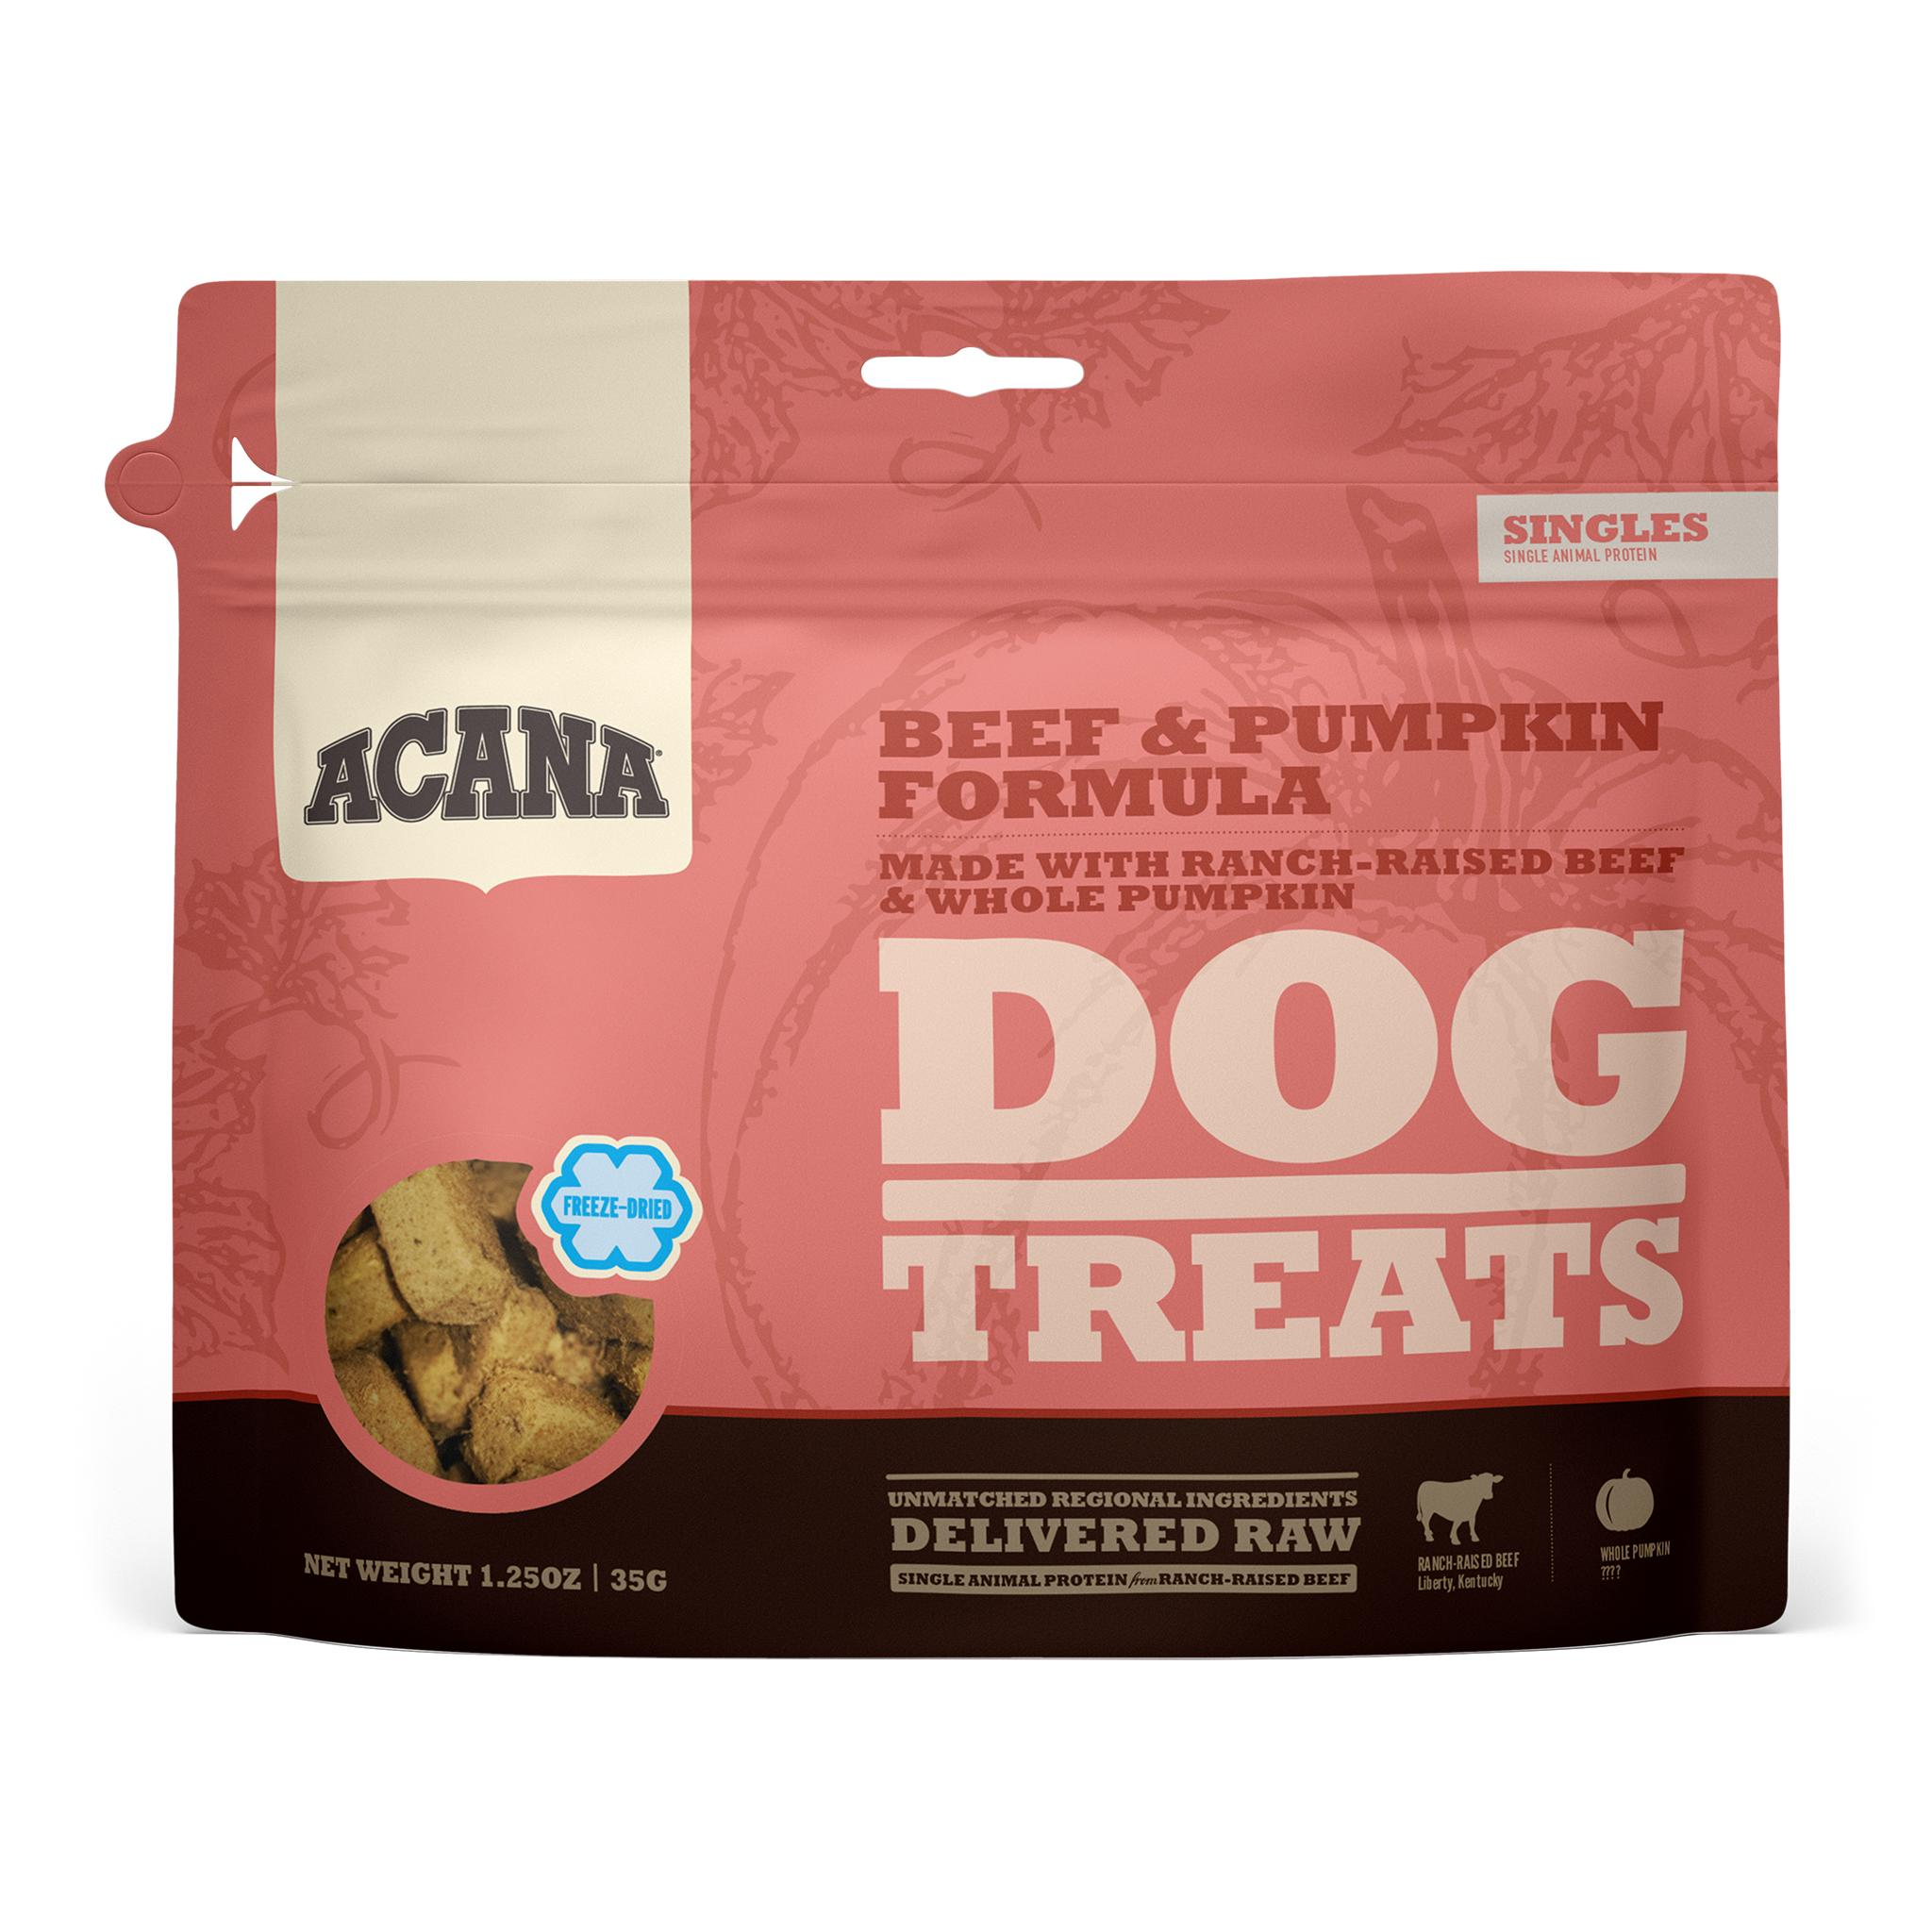 ACANA Singles Beef & Pumpkin Grain-Free Freeze-Dried Dog Treats, 1.25-oz